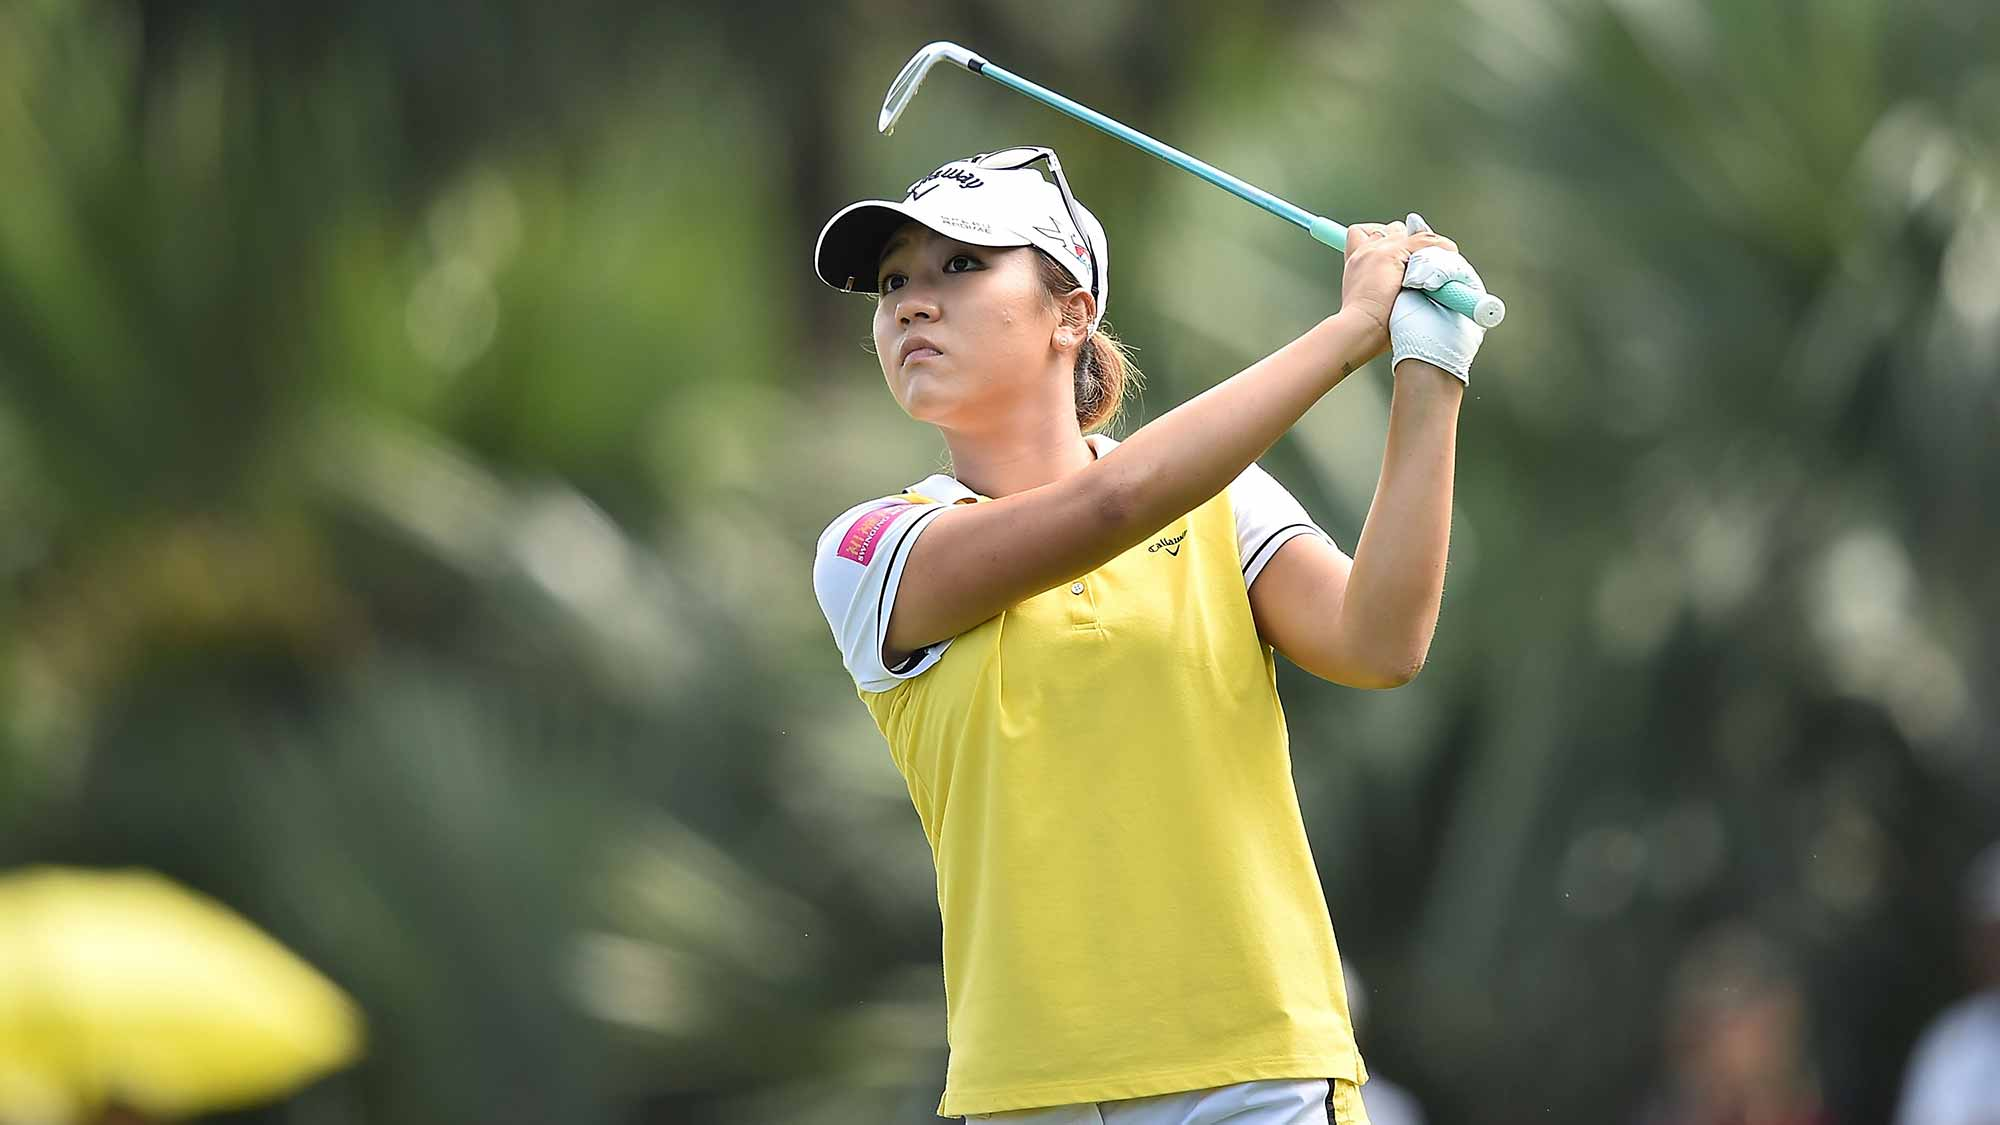 Lydia Ko of New Zealand plays a shot during the final round of 2015 Fubon LPGA Taiwan Championship on October 25, 2015 in Miramar Resort & Country Club